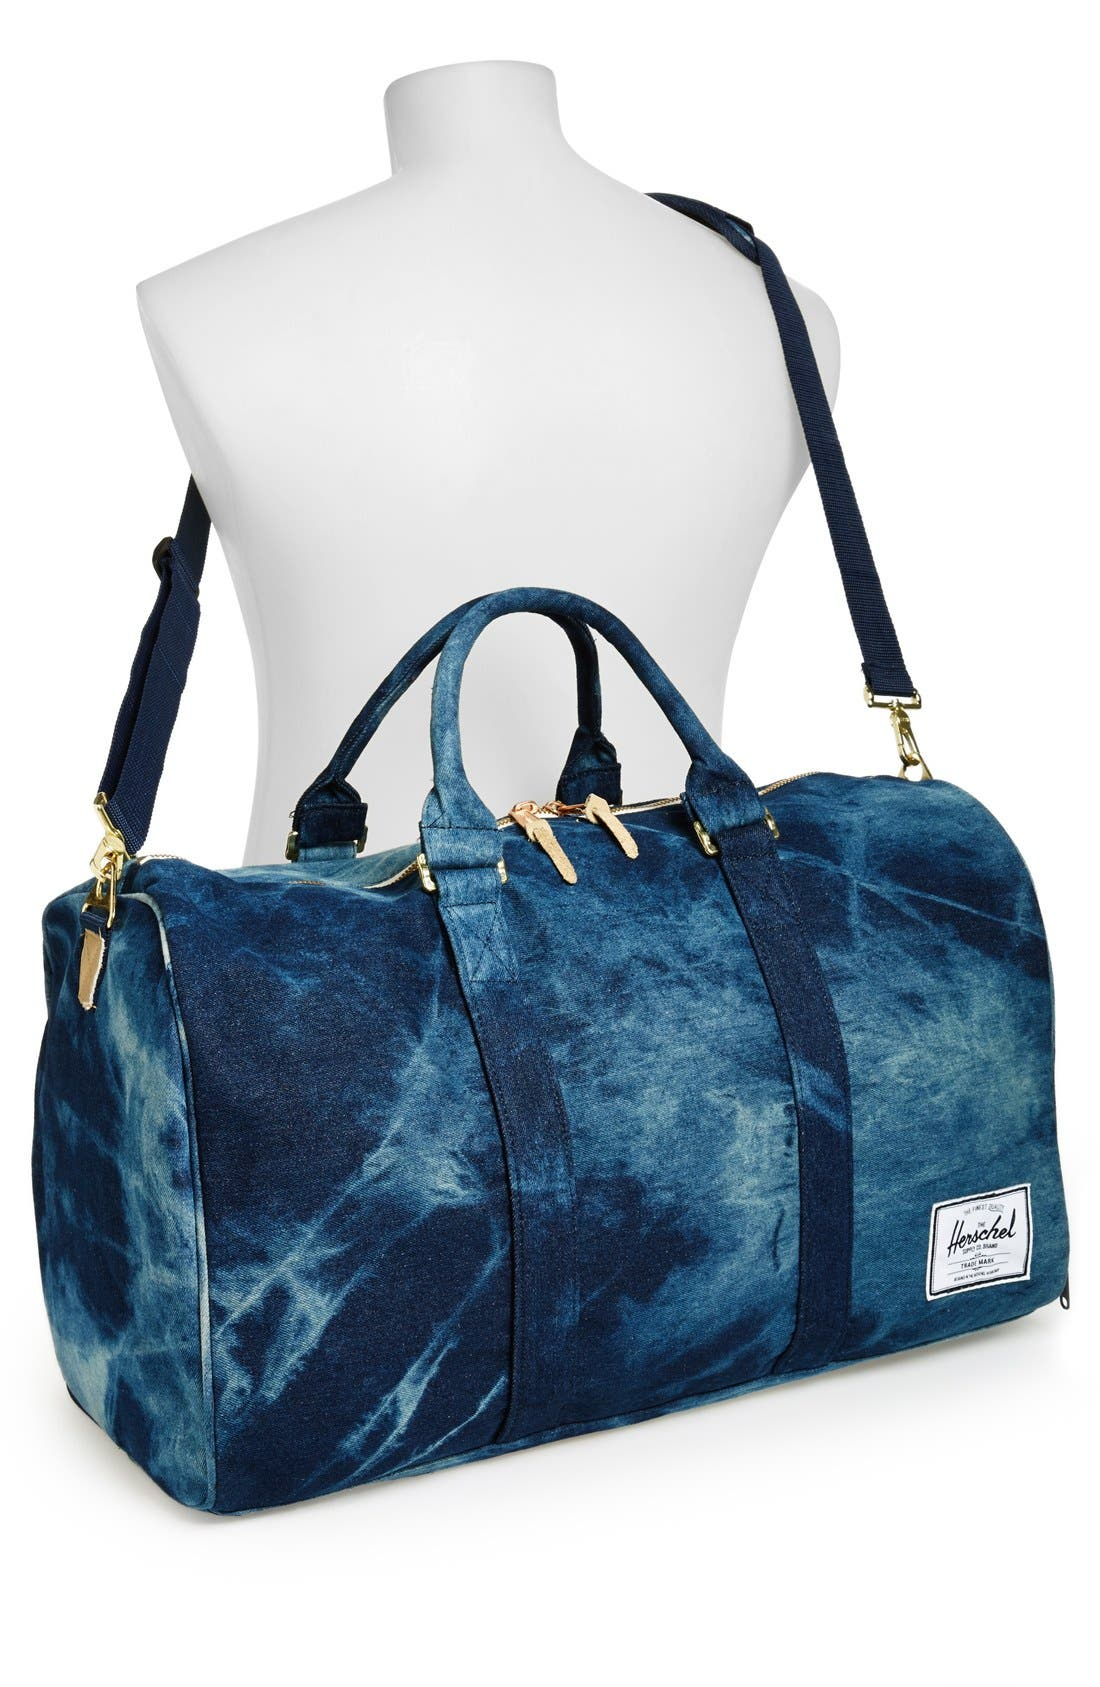 Alternate Image 2  - Herschel Supply Co. 'Novel' Duffel Bag